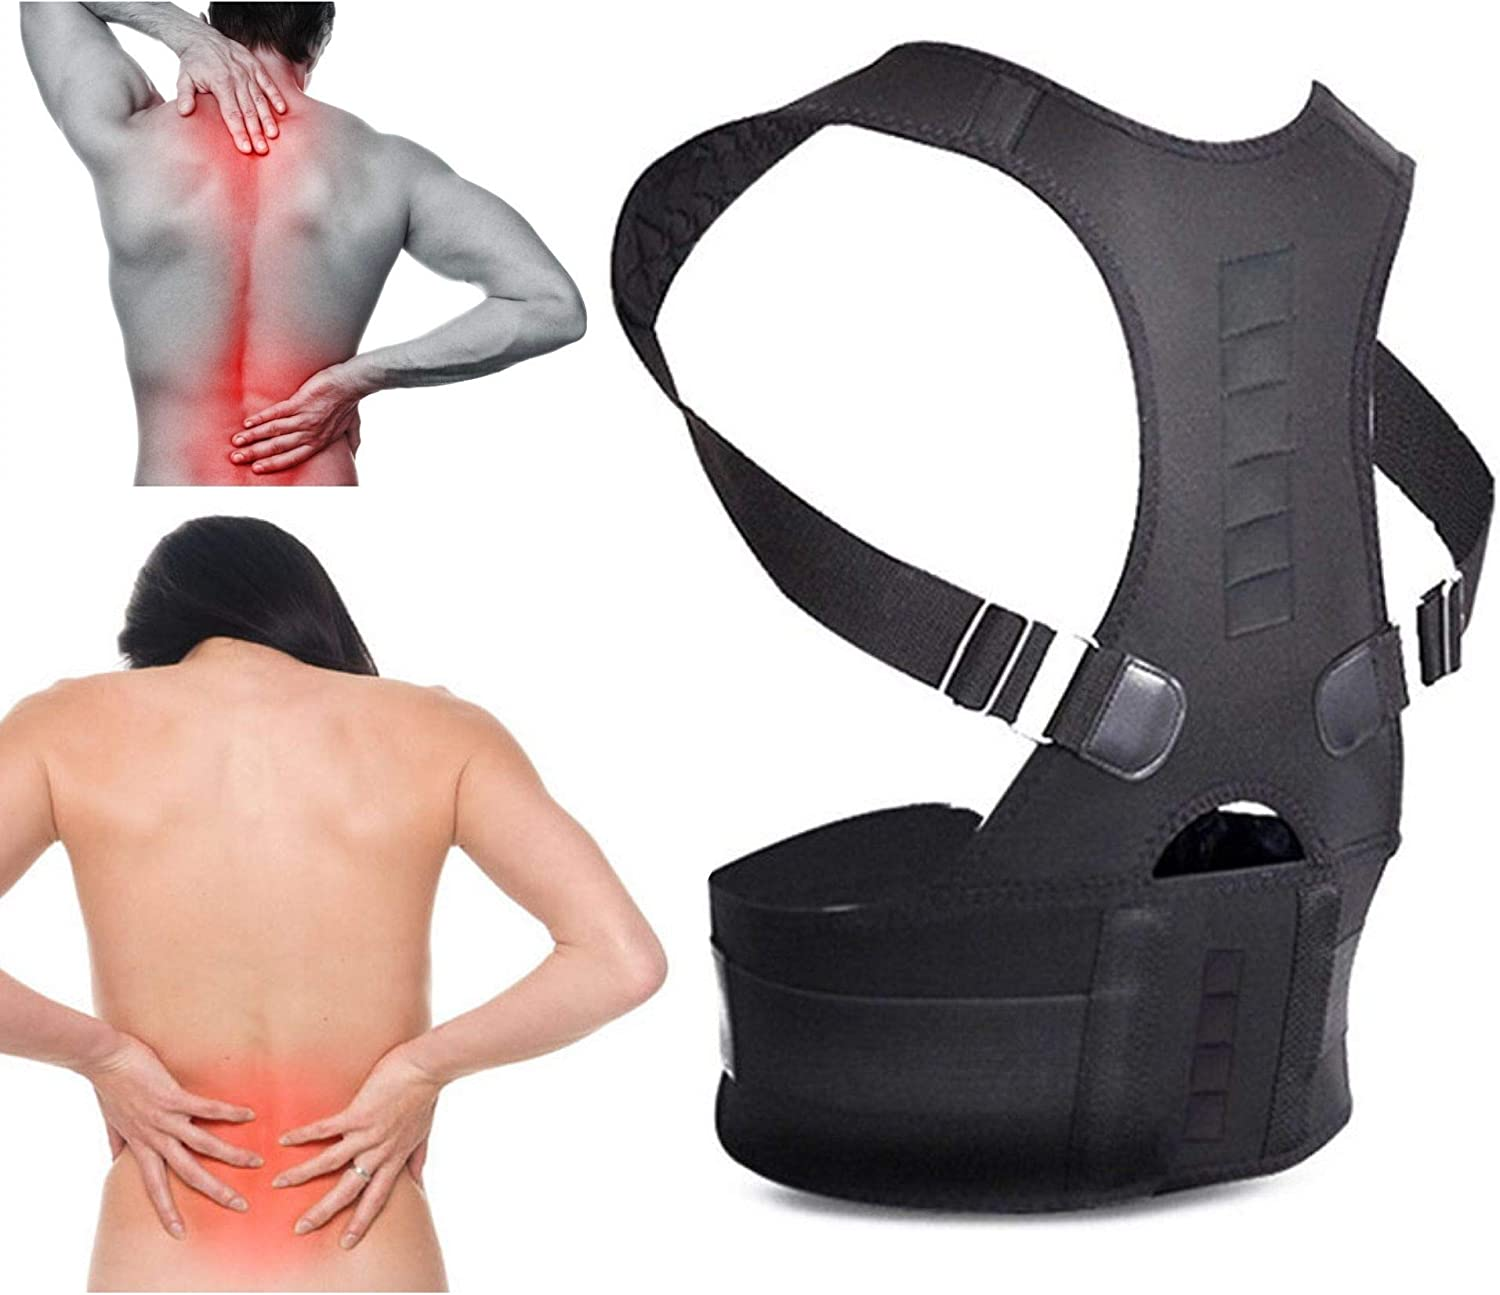 Breathable Mesh Design with Lumbar Pad Herniated Disc Sciatica Size XL Back Braces for Lower Back Pain Lower Back Brace for Back Pain Scoliosis and More!